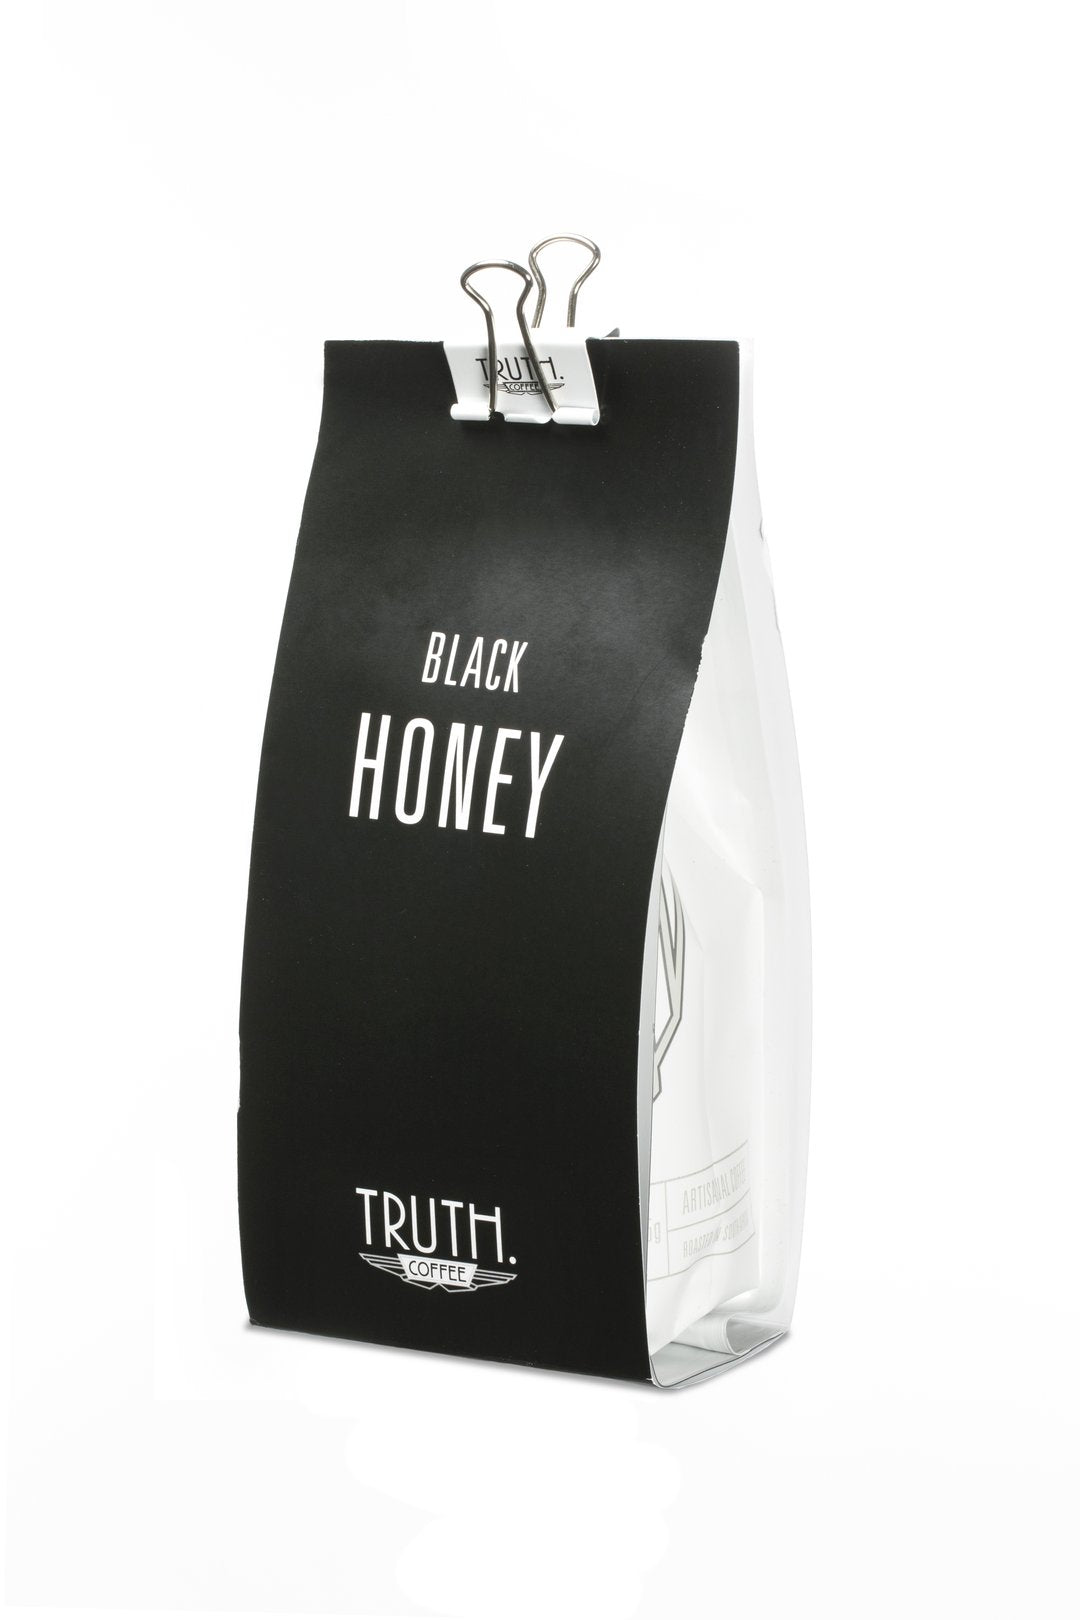 Black Honey - Truth Coffee Roasting